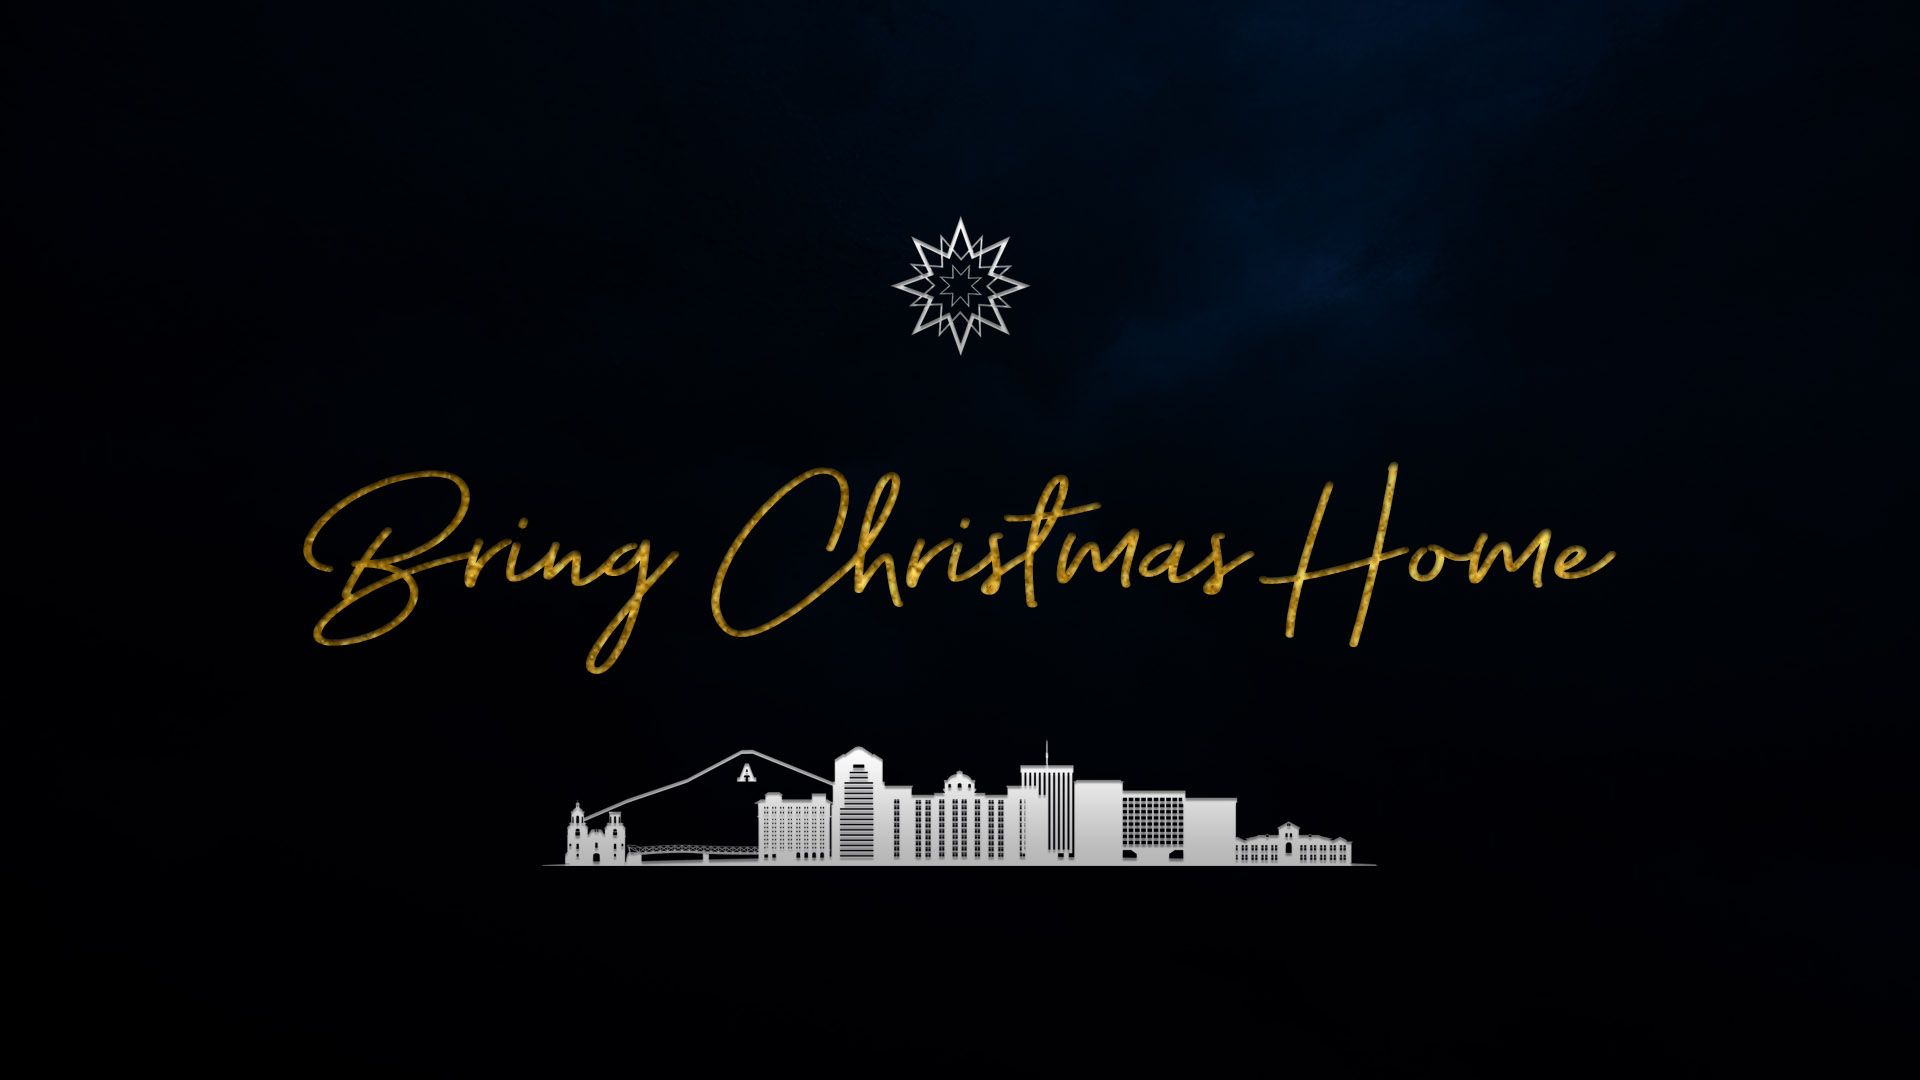 Bring Christmas Home